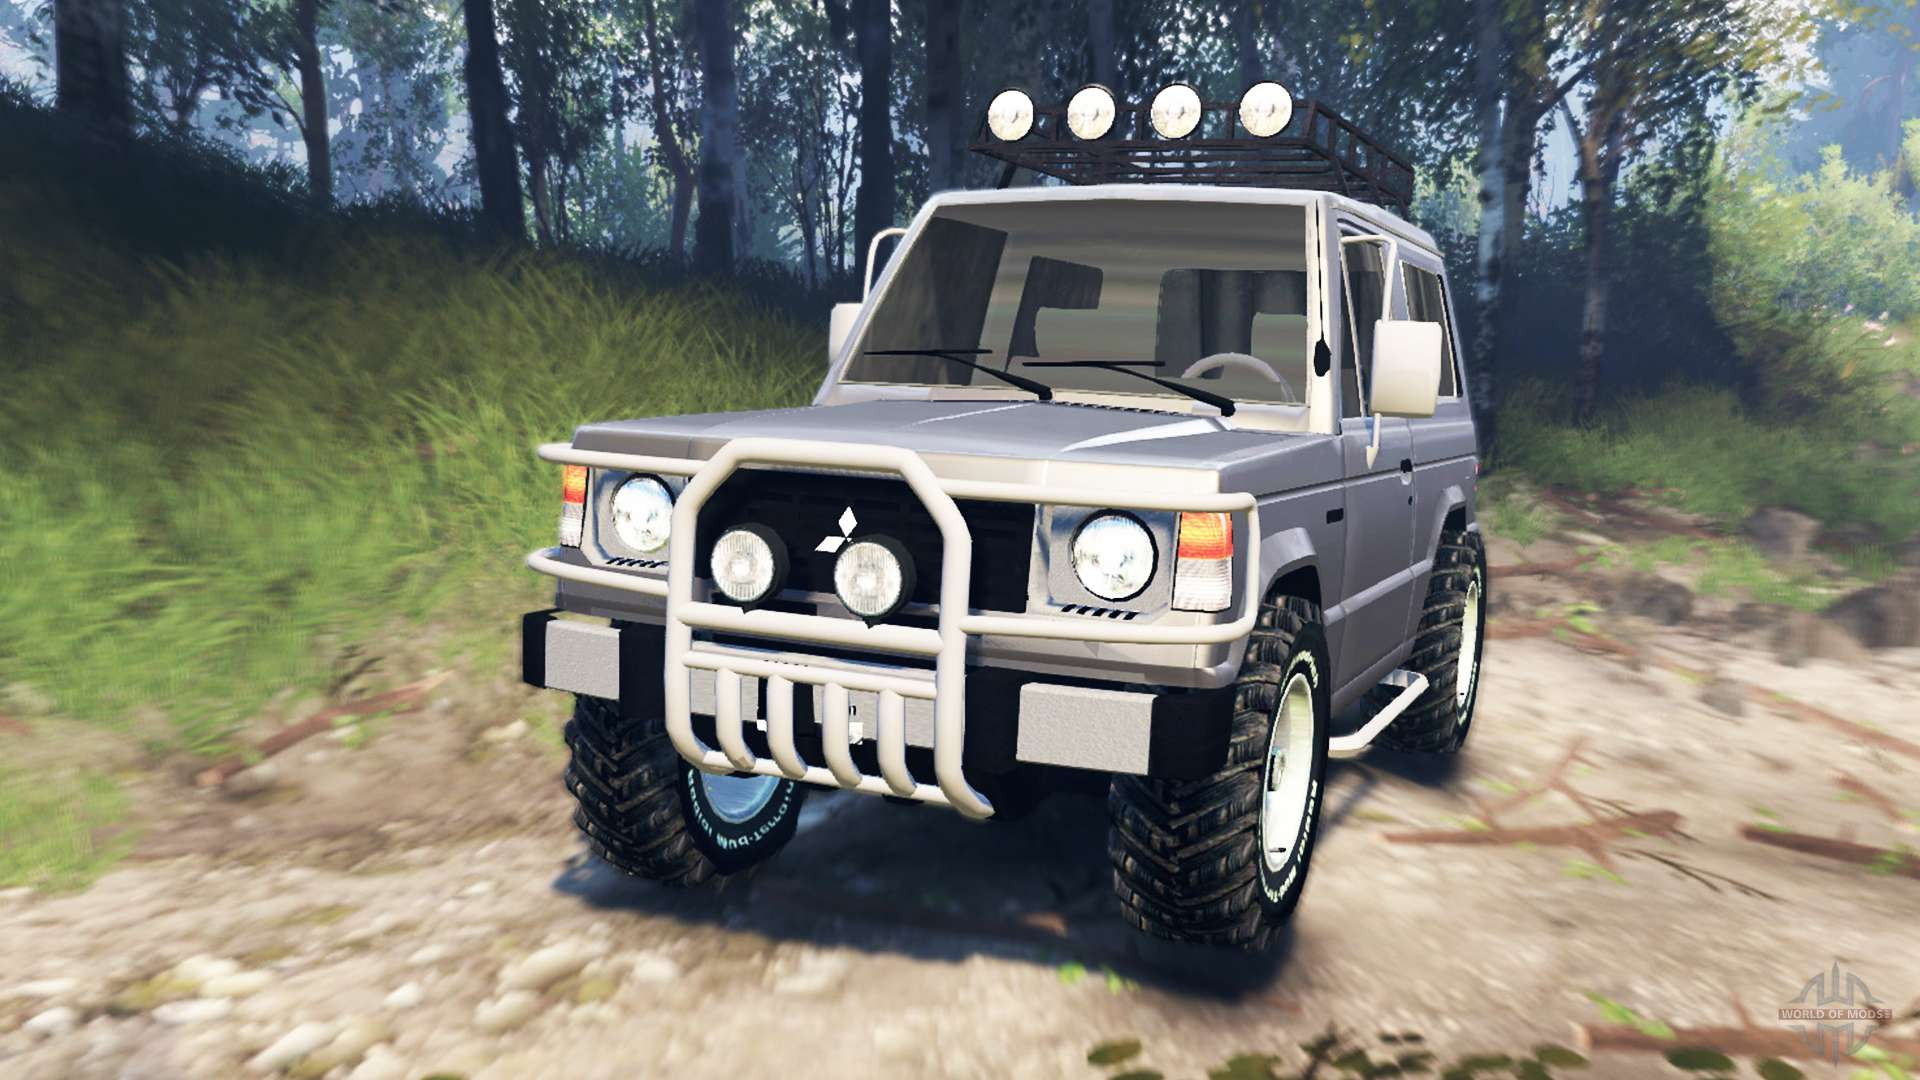 202772-SpinTires-2016-07-31-15-31-15-047